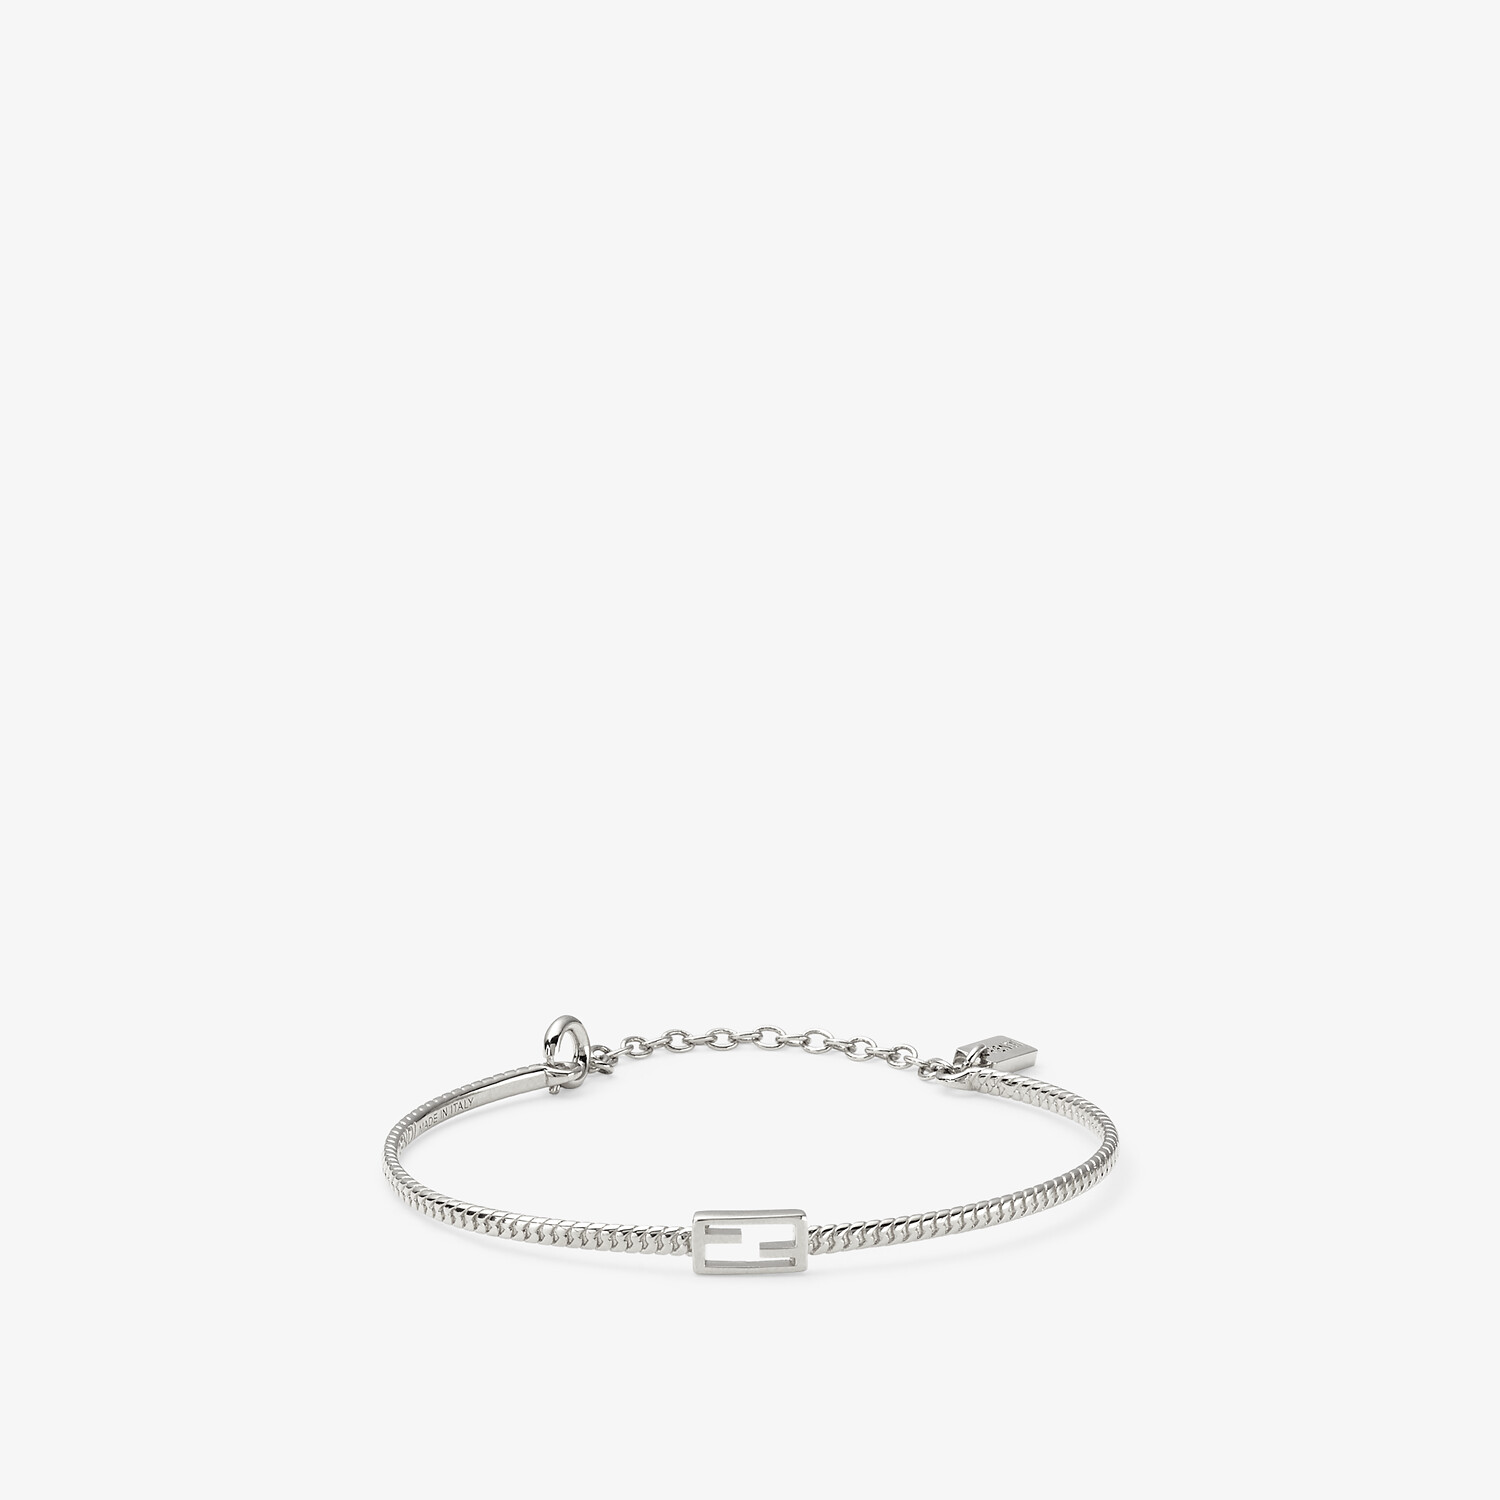 FENDI BAGUETTE BRACELET - Silver-colored bracelet - view 1 detail